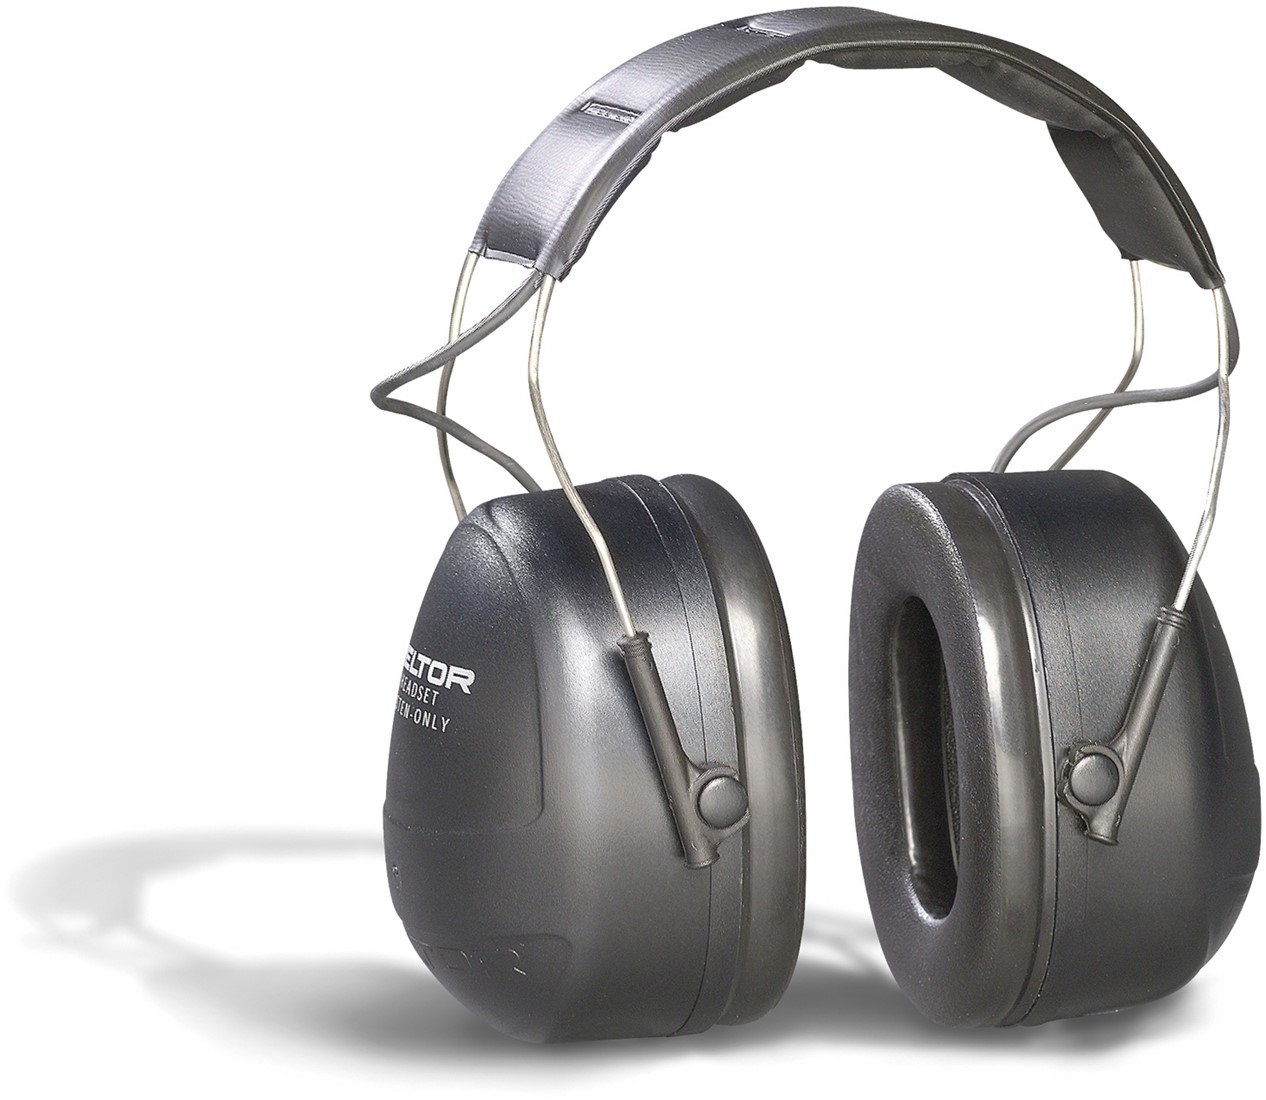 3M Peltor ListenOnly 3.5mm Headset